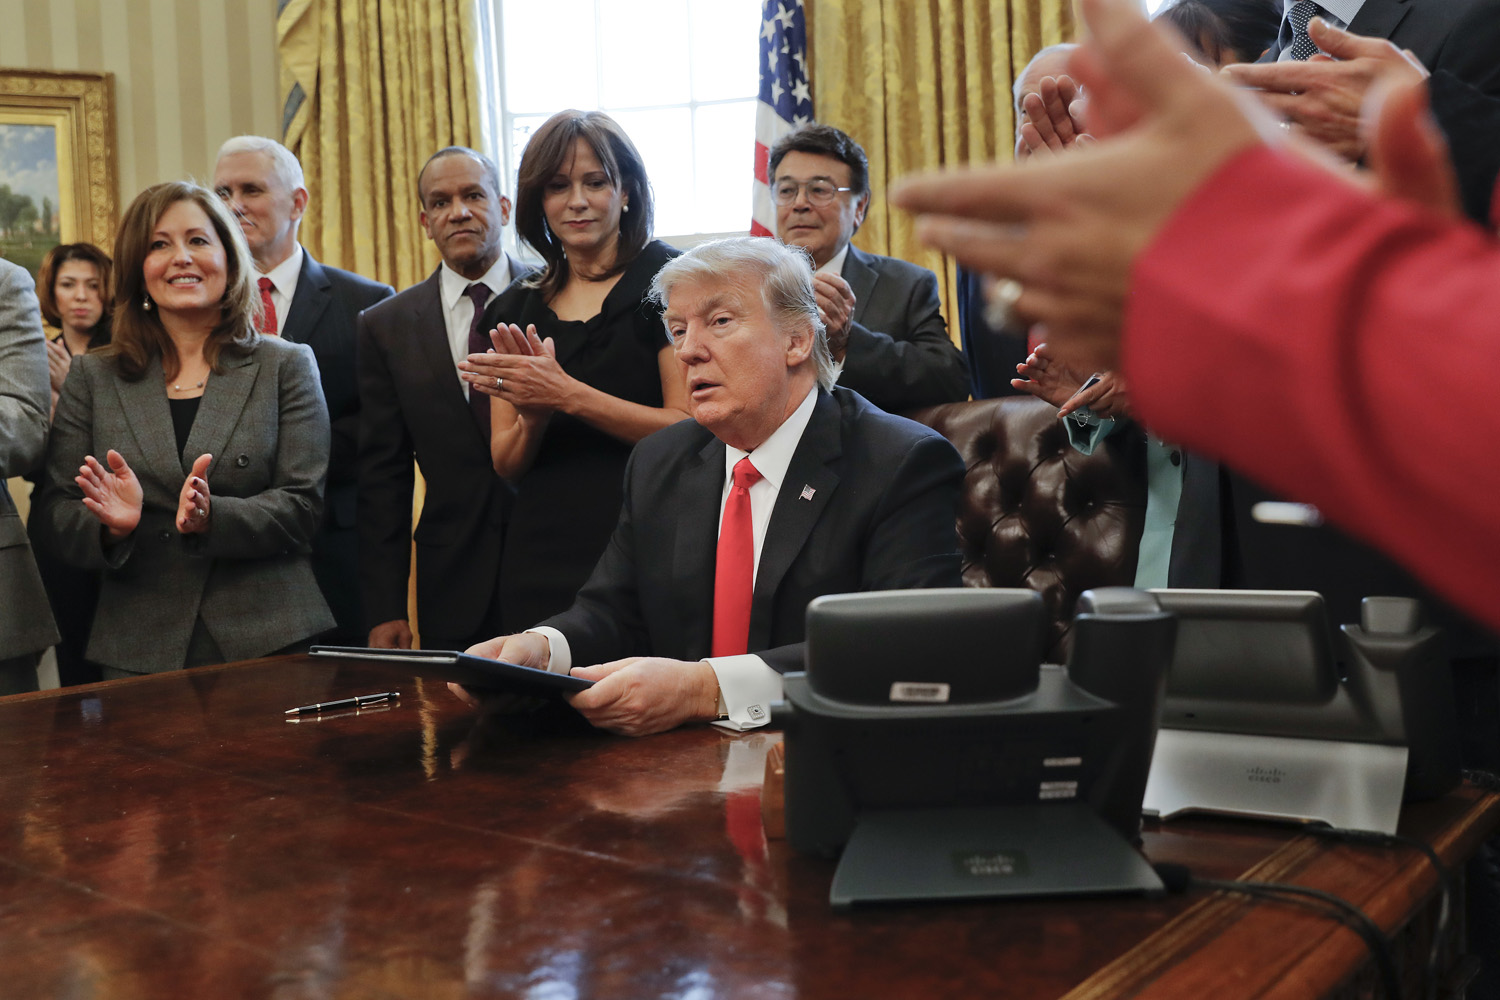 Small business leaders applaud President Donald Trump after he signed an executive order in the Oval Office of the White House in Washington, DC. (Pablo Martinez Monsivais/AP)